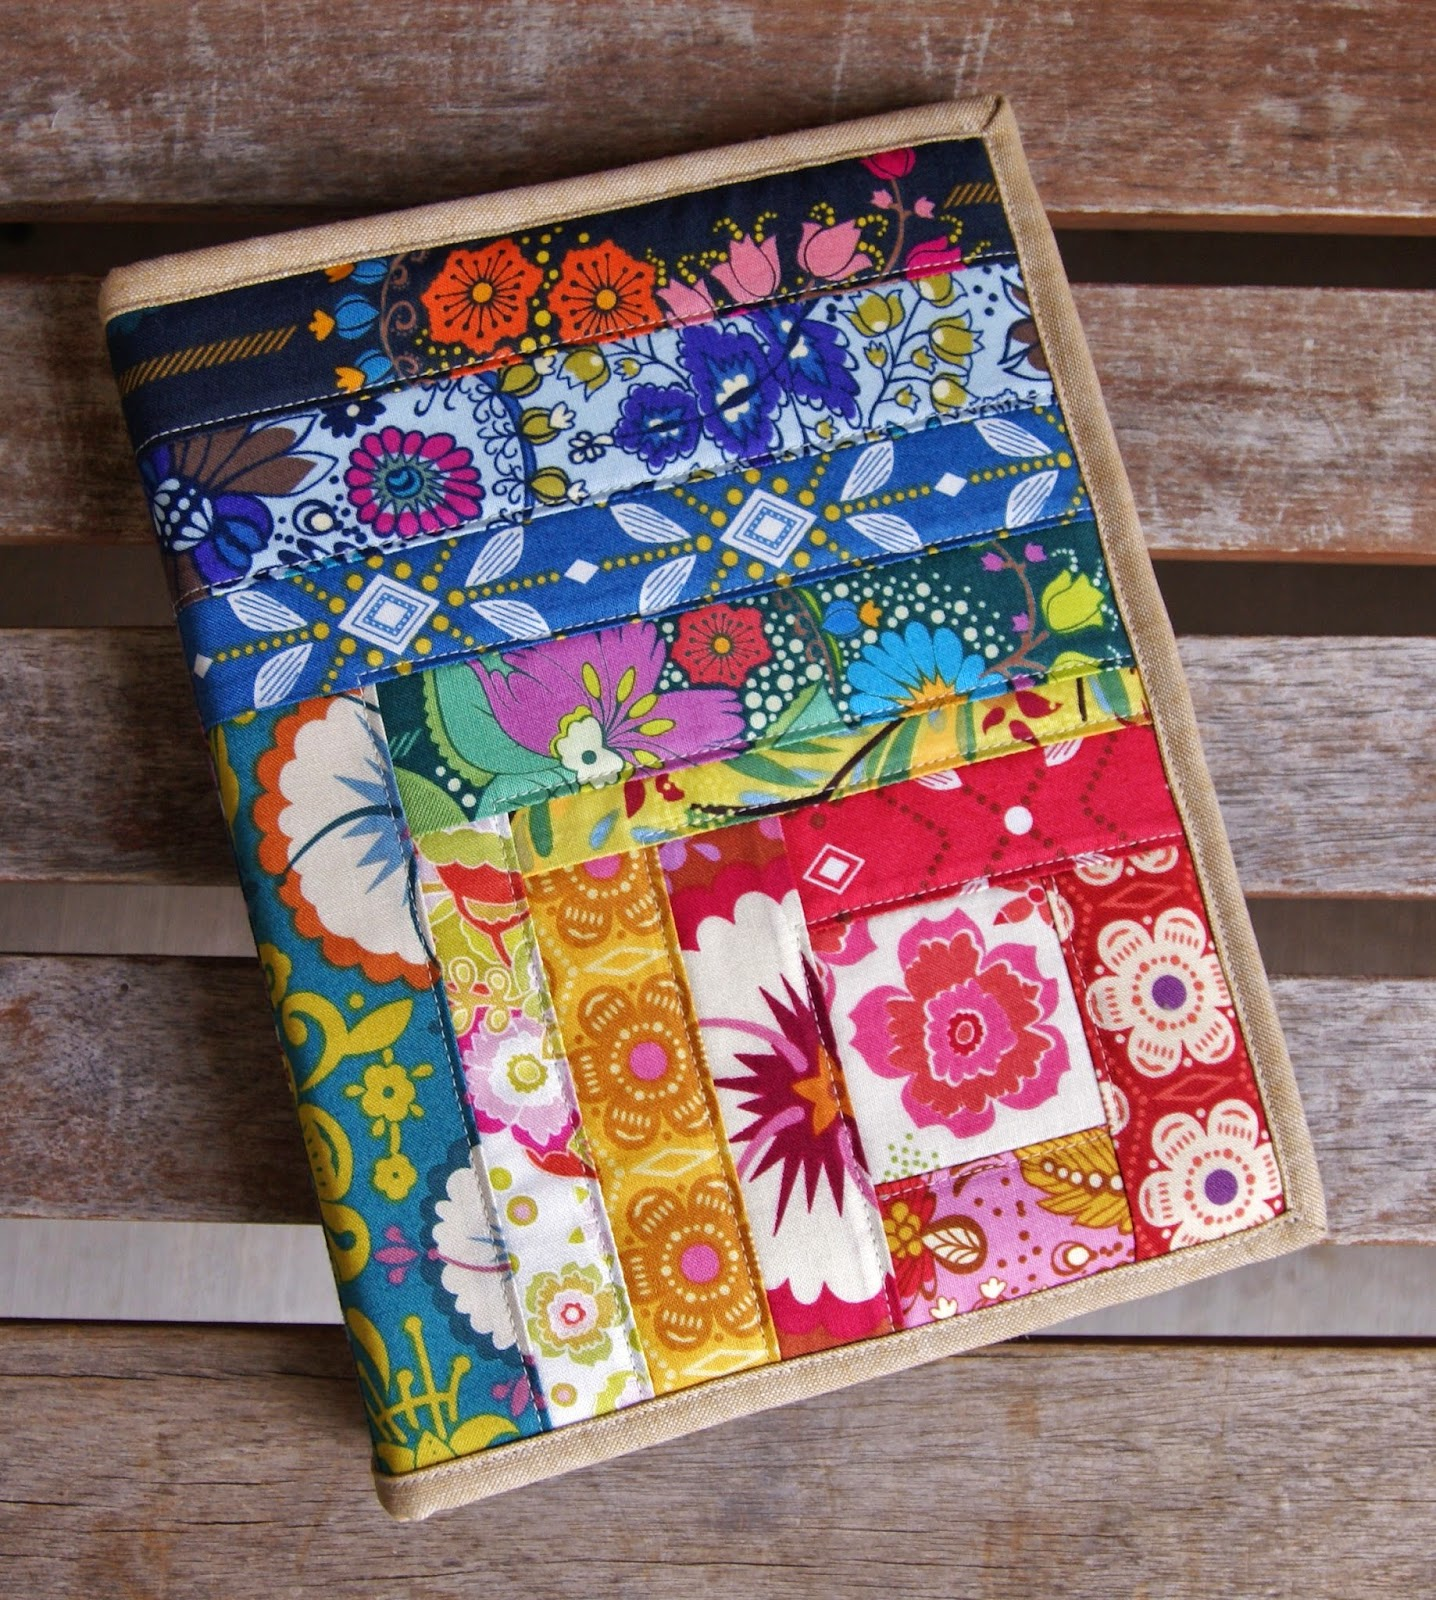 How To Make A Quilted Book Cover ~ Fabric mutt folk song notebook cover